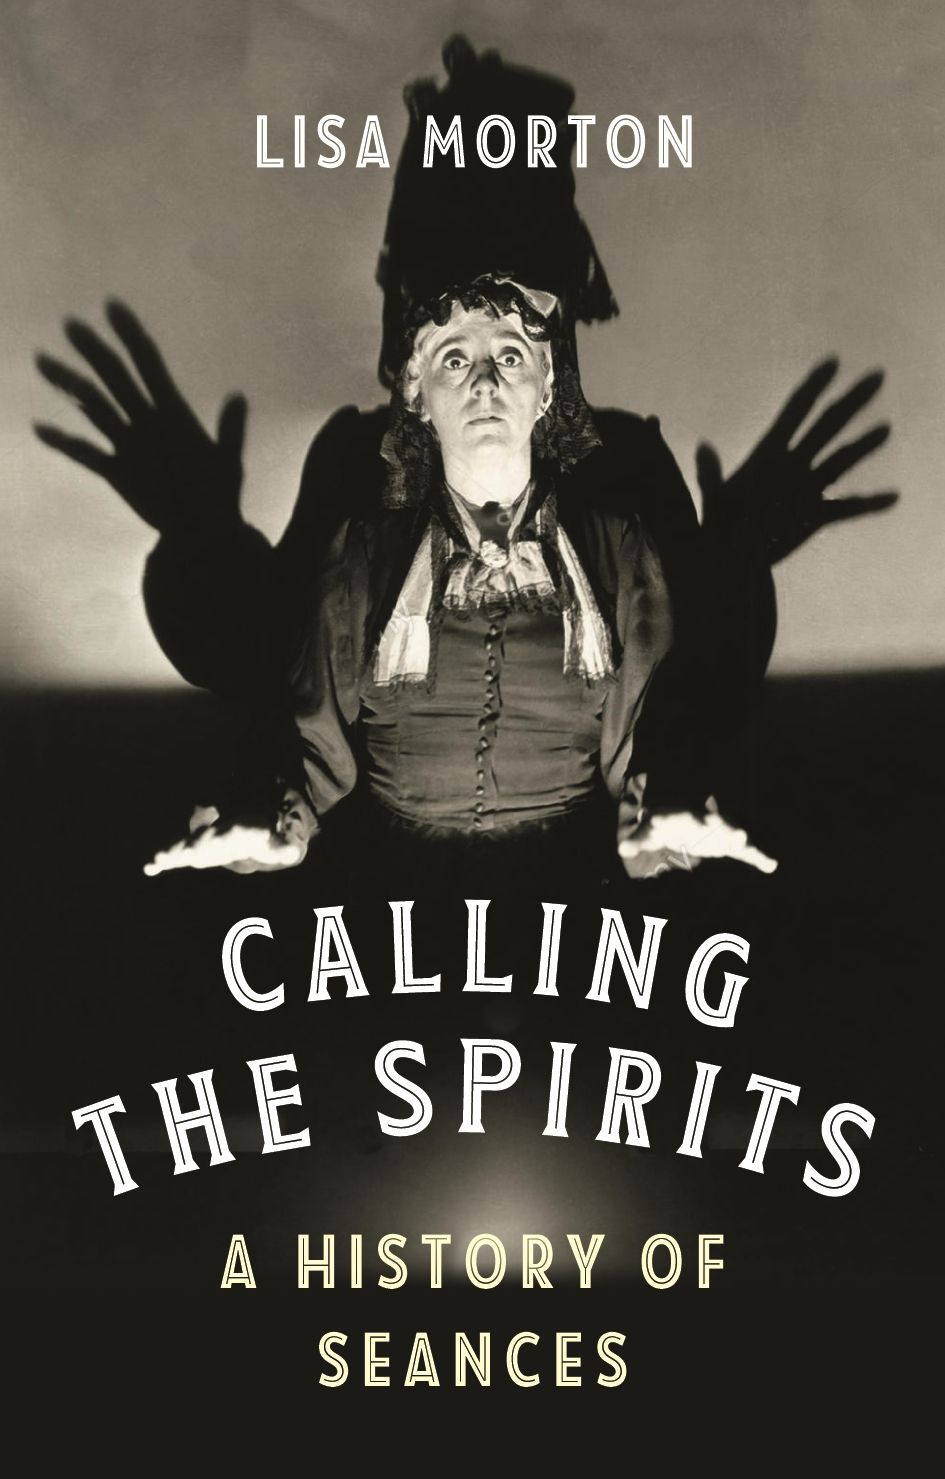 Calling the Spirits: A History of Seances